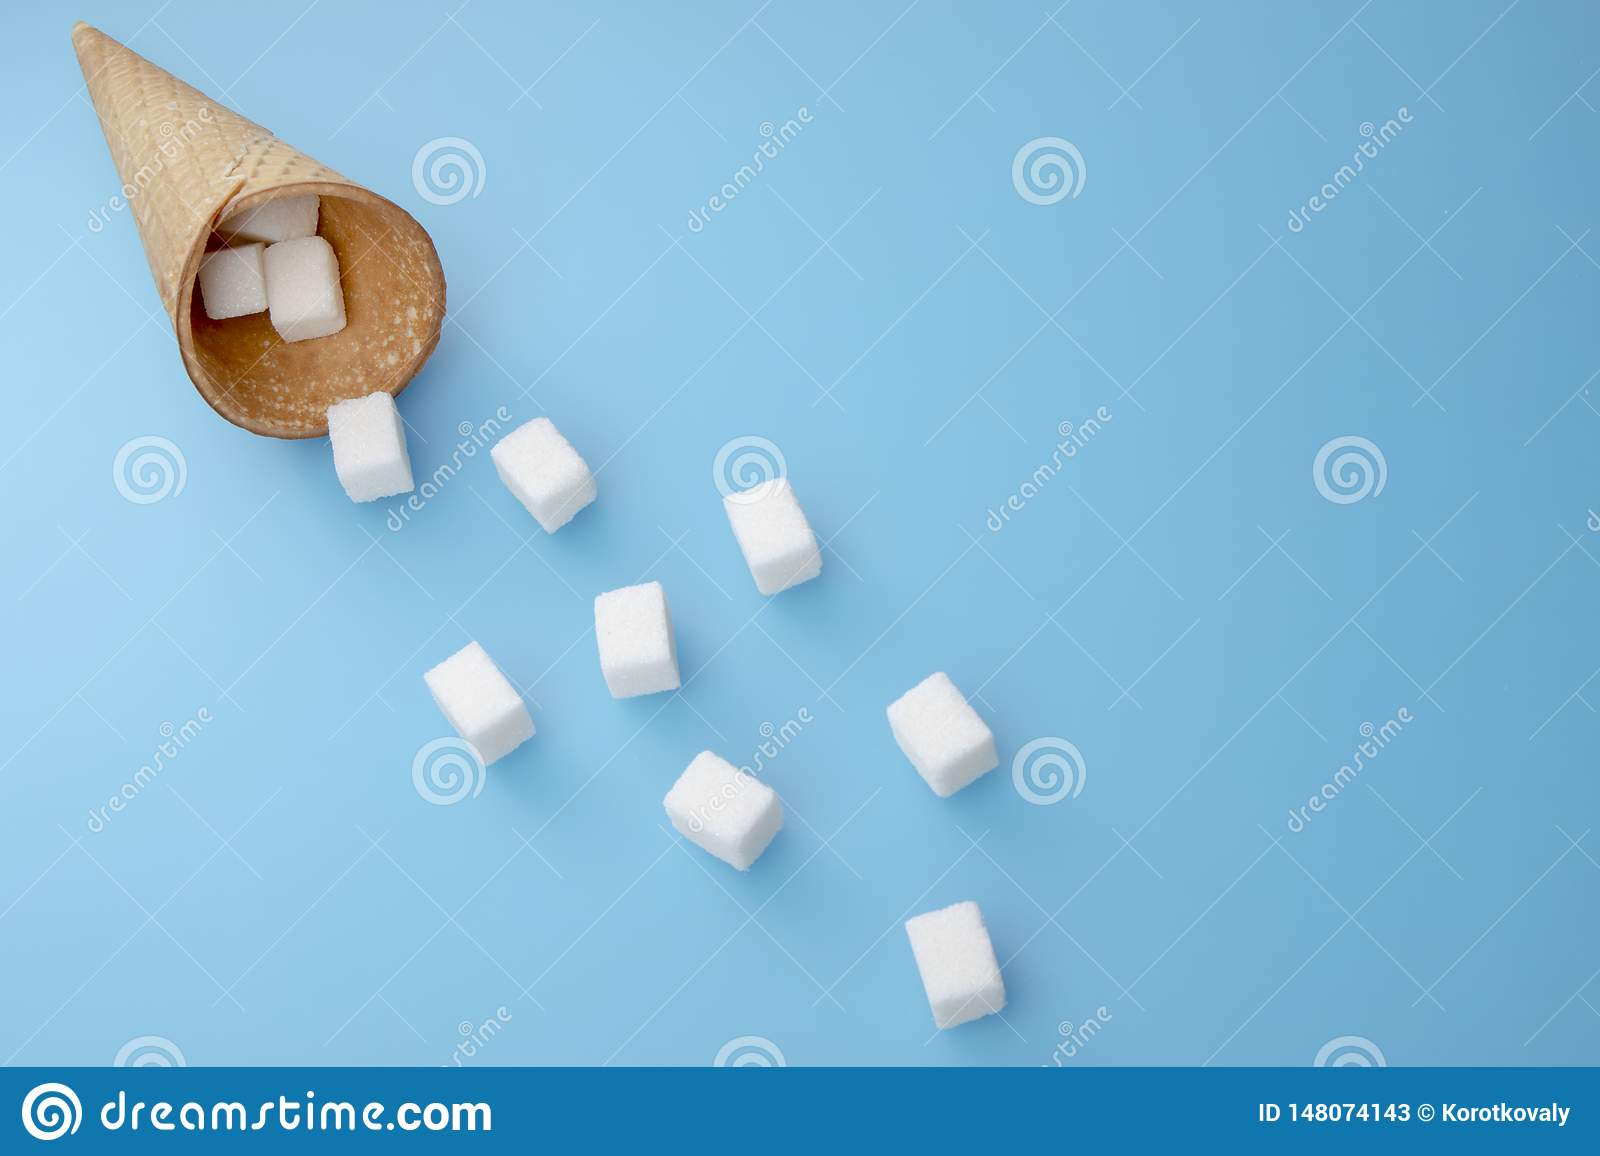 Sugar cubes from ice cream cone. Copy space for text. Top view